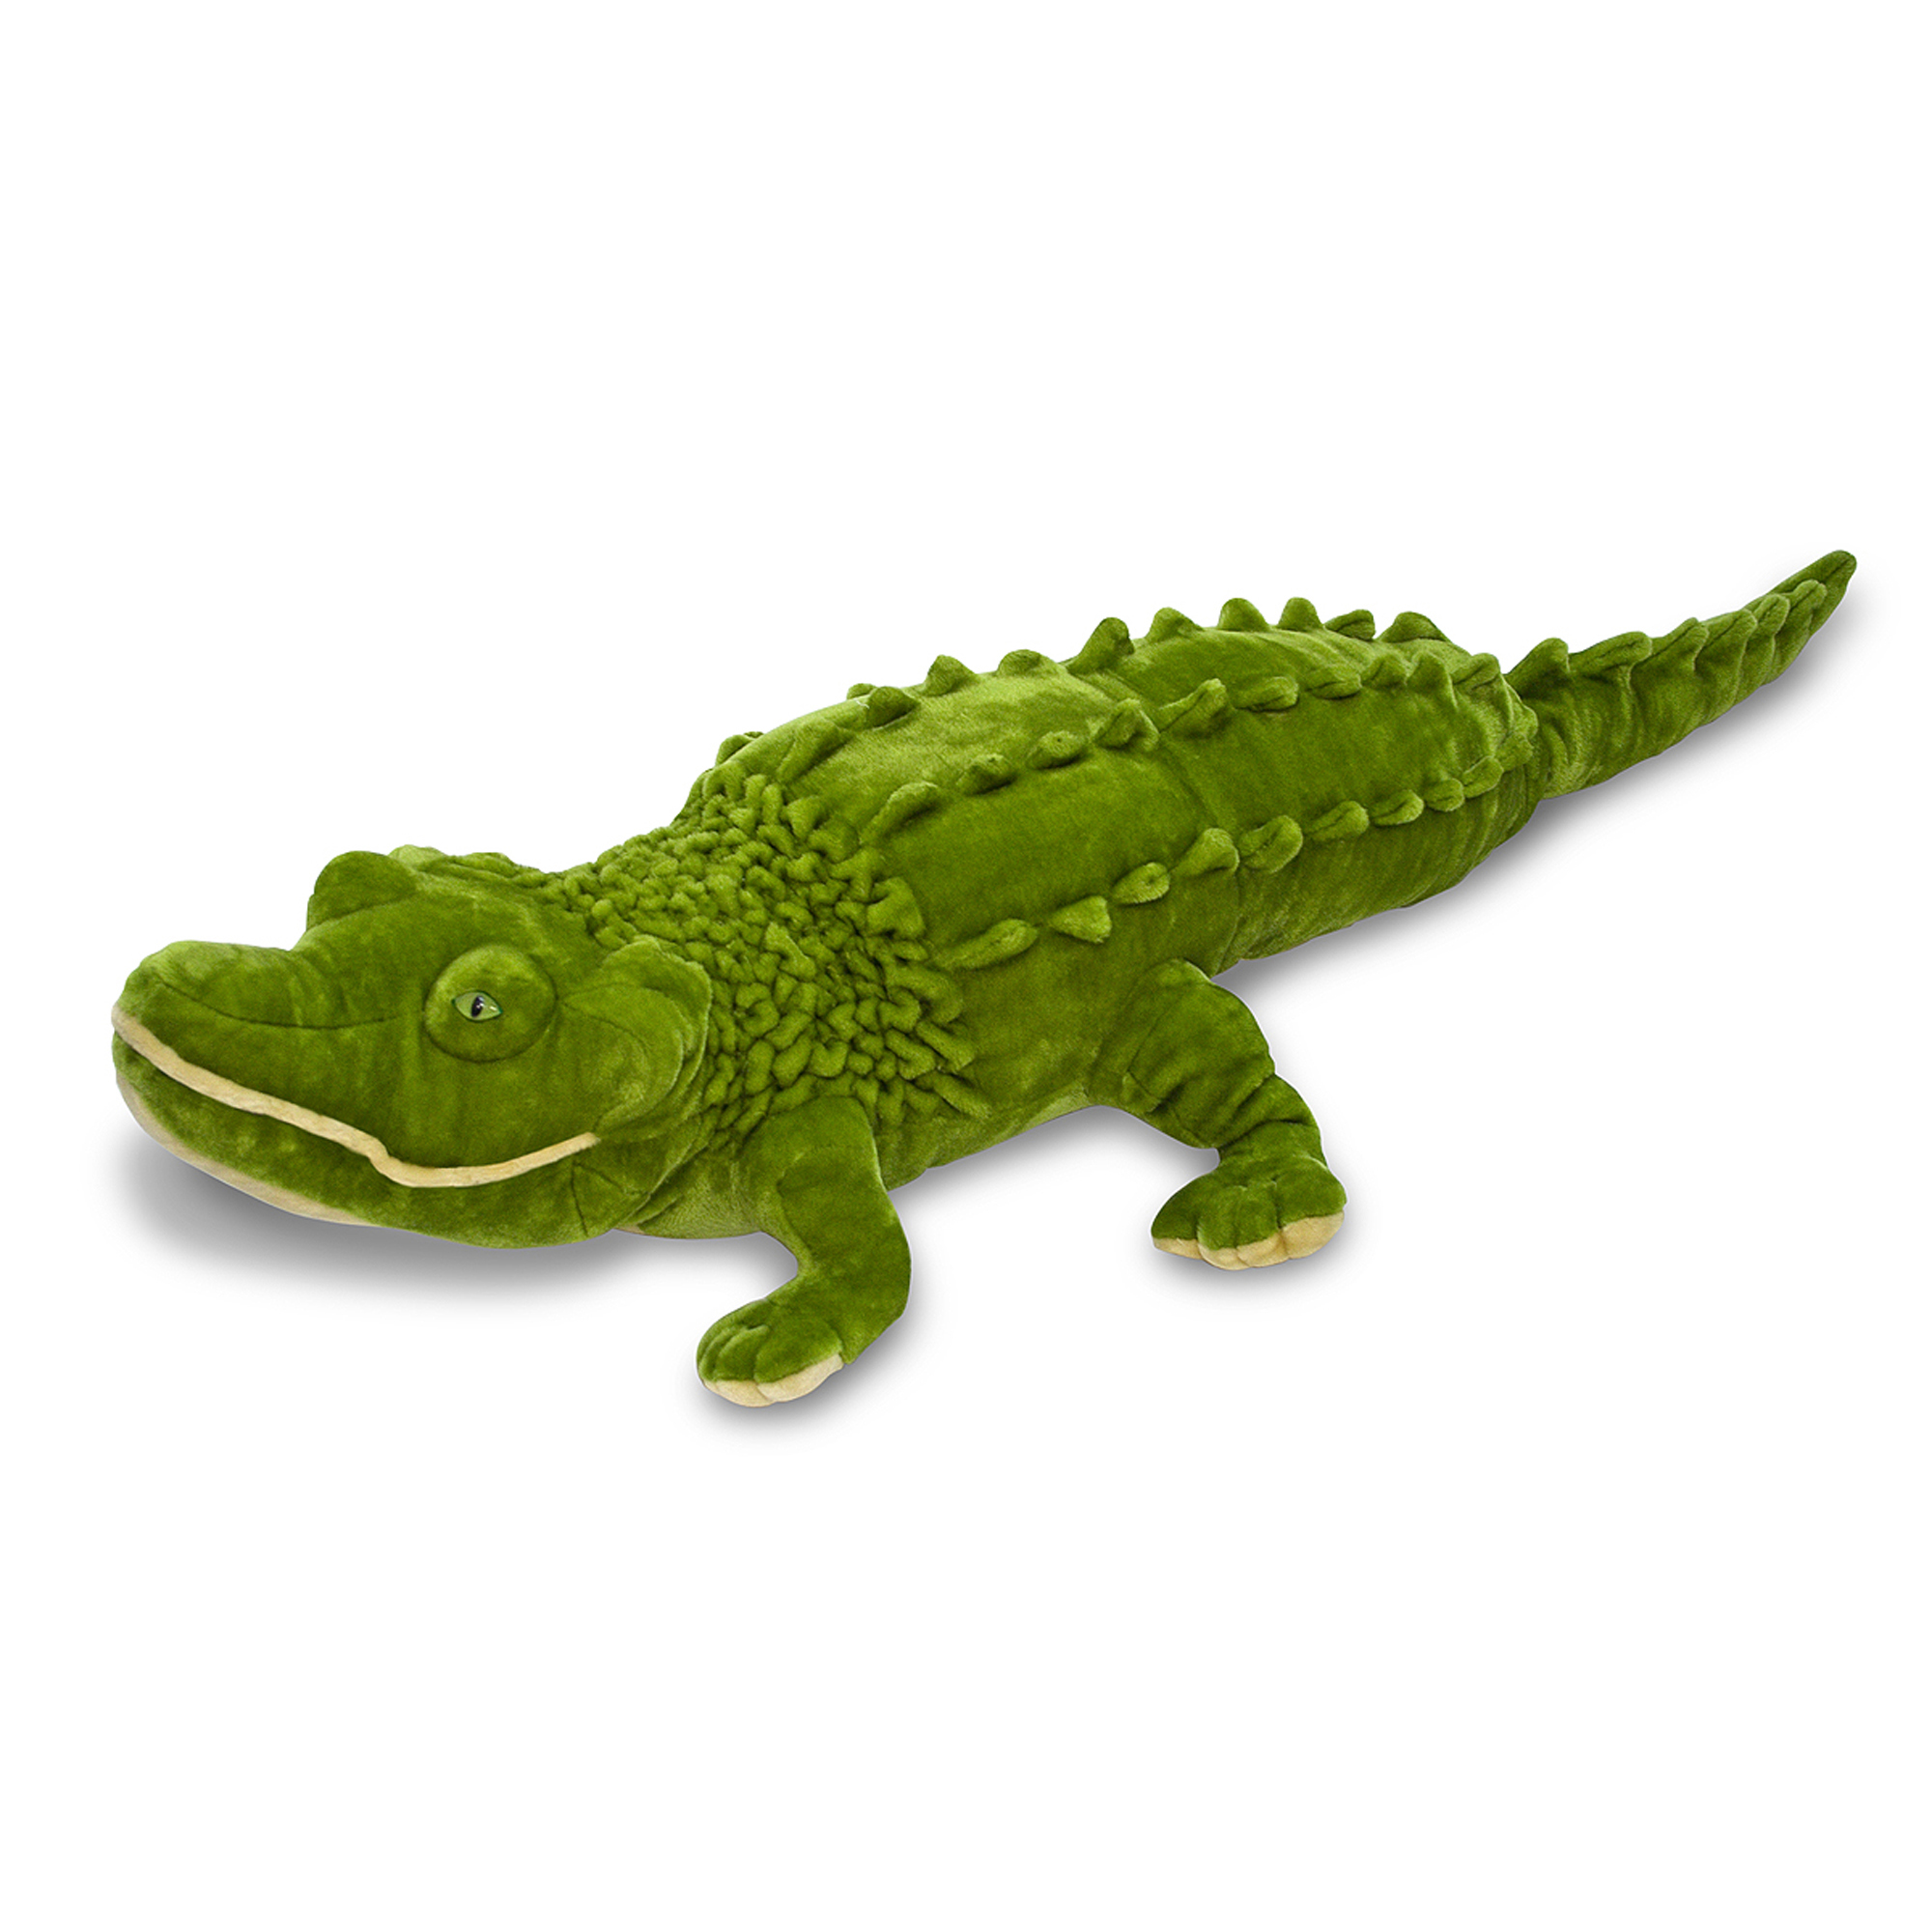 It's amazing! Over five feet long, this fabulous alligator stuffed animal will inspire lots of affectionate hugs. Every wrinkle and ridge adds to the allure and interest of this reptilian friend. With its excellent quality construction, it will withstand lots of friendly wrassling.